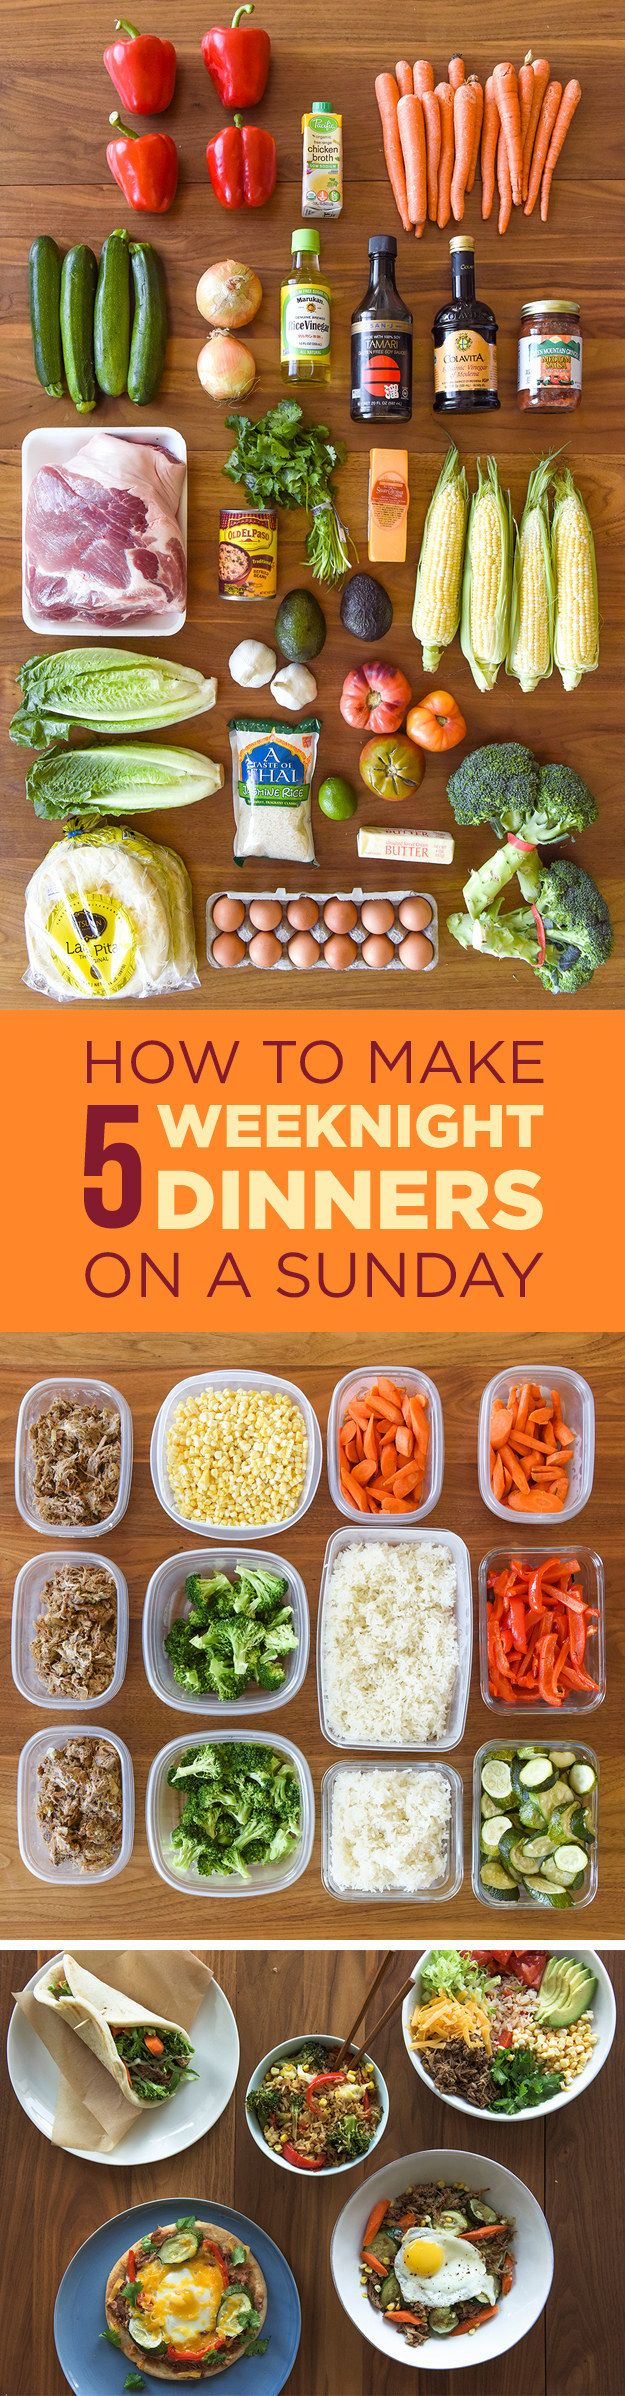 This four-person meal plan comes with a grocery list, step-by-step instructions, and zero weeknight hassle.